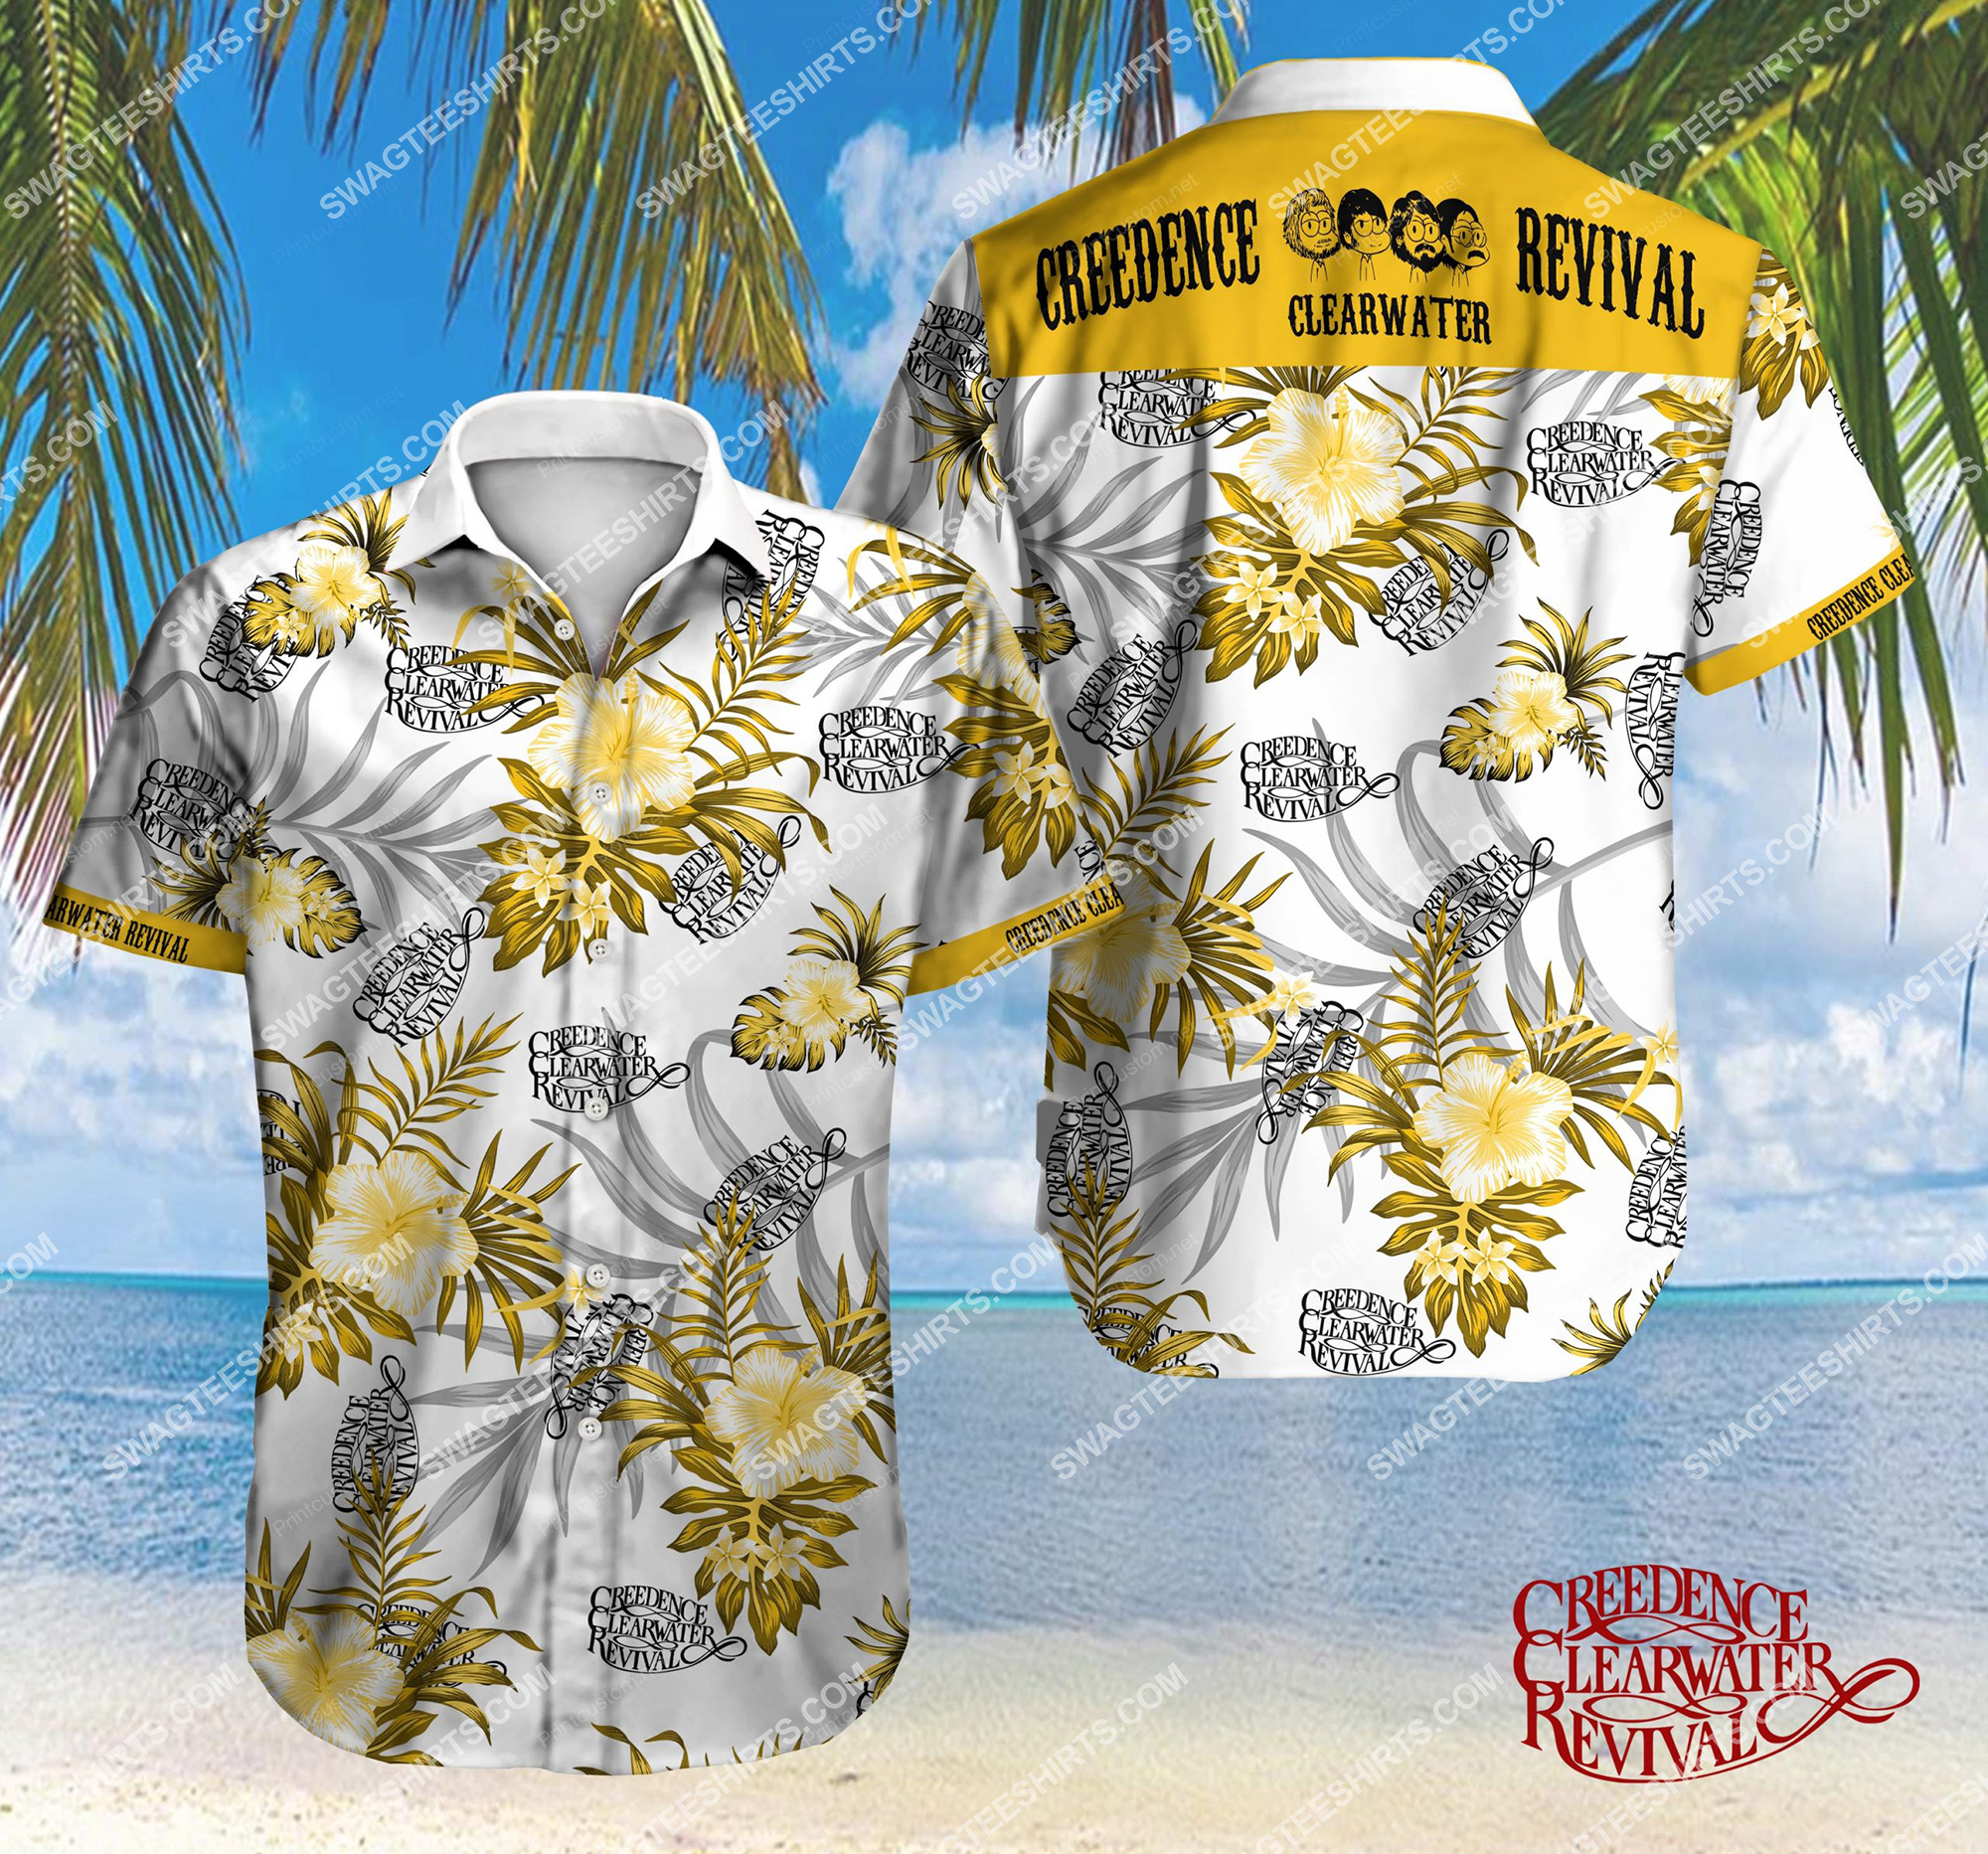 the creedence clearwater revival full printing hawaiian shirt 2 - Copy (3)